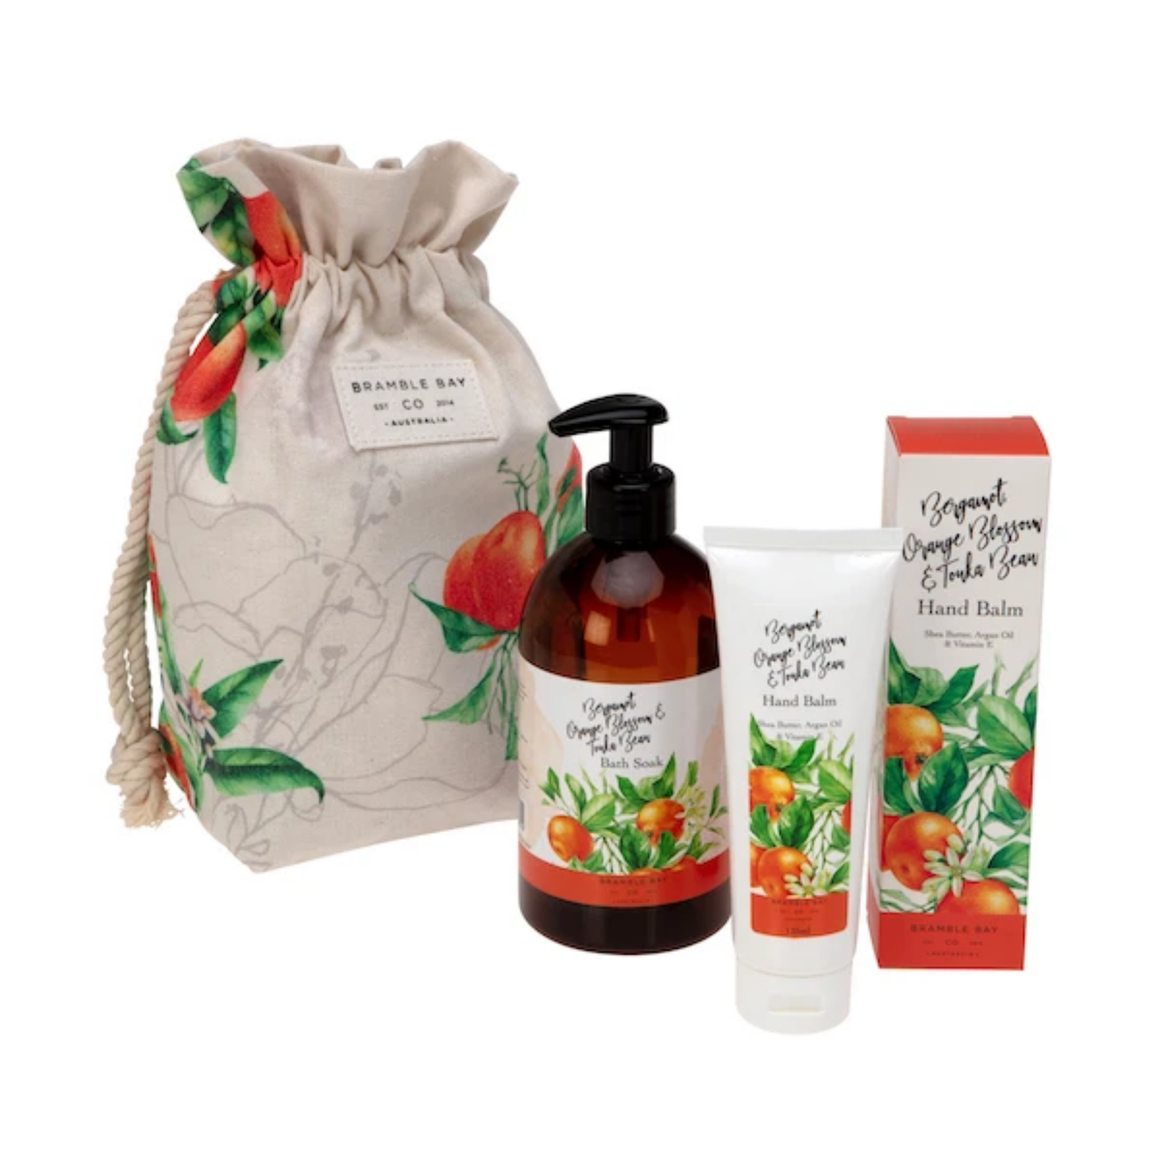 GIFT BAG BERGAMOT, ORANGE BLOSSOM & TONKA BEAN (HAND BALM, BODY WASH & SPONGE)